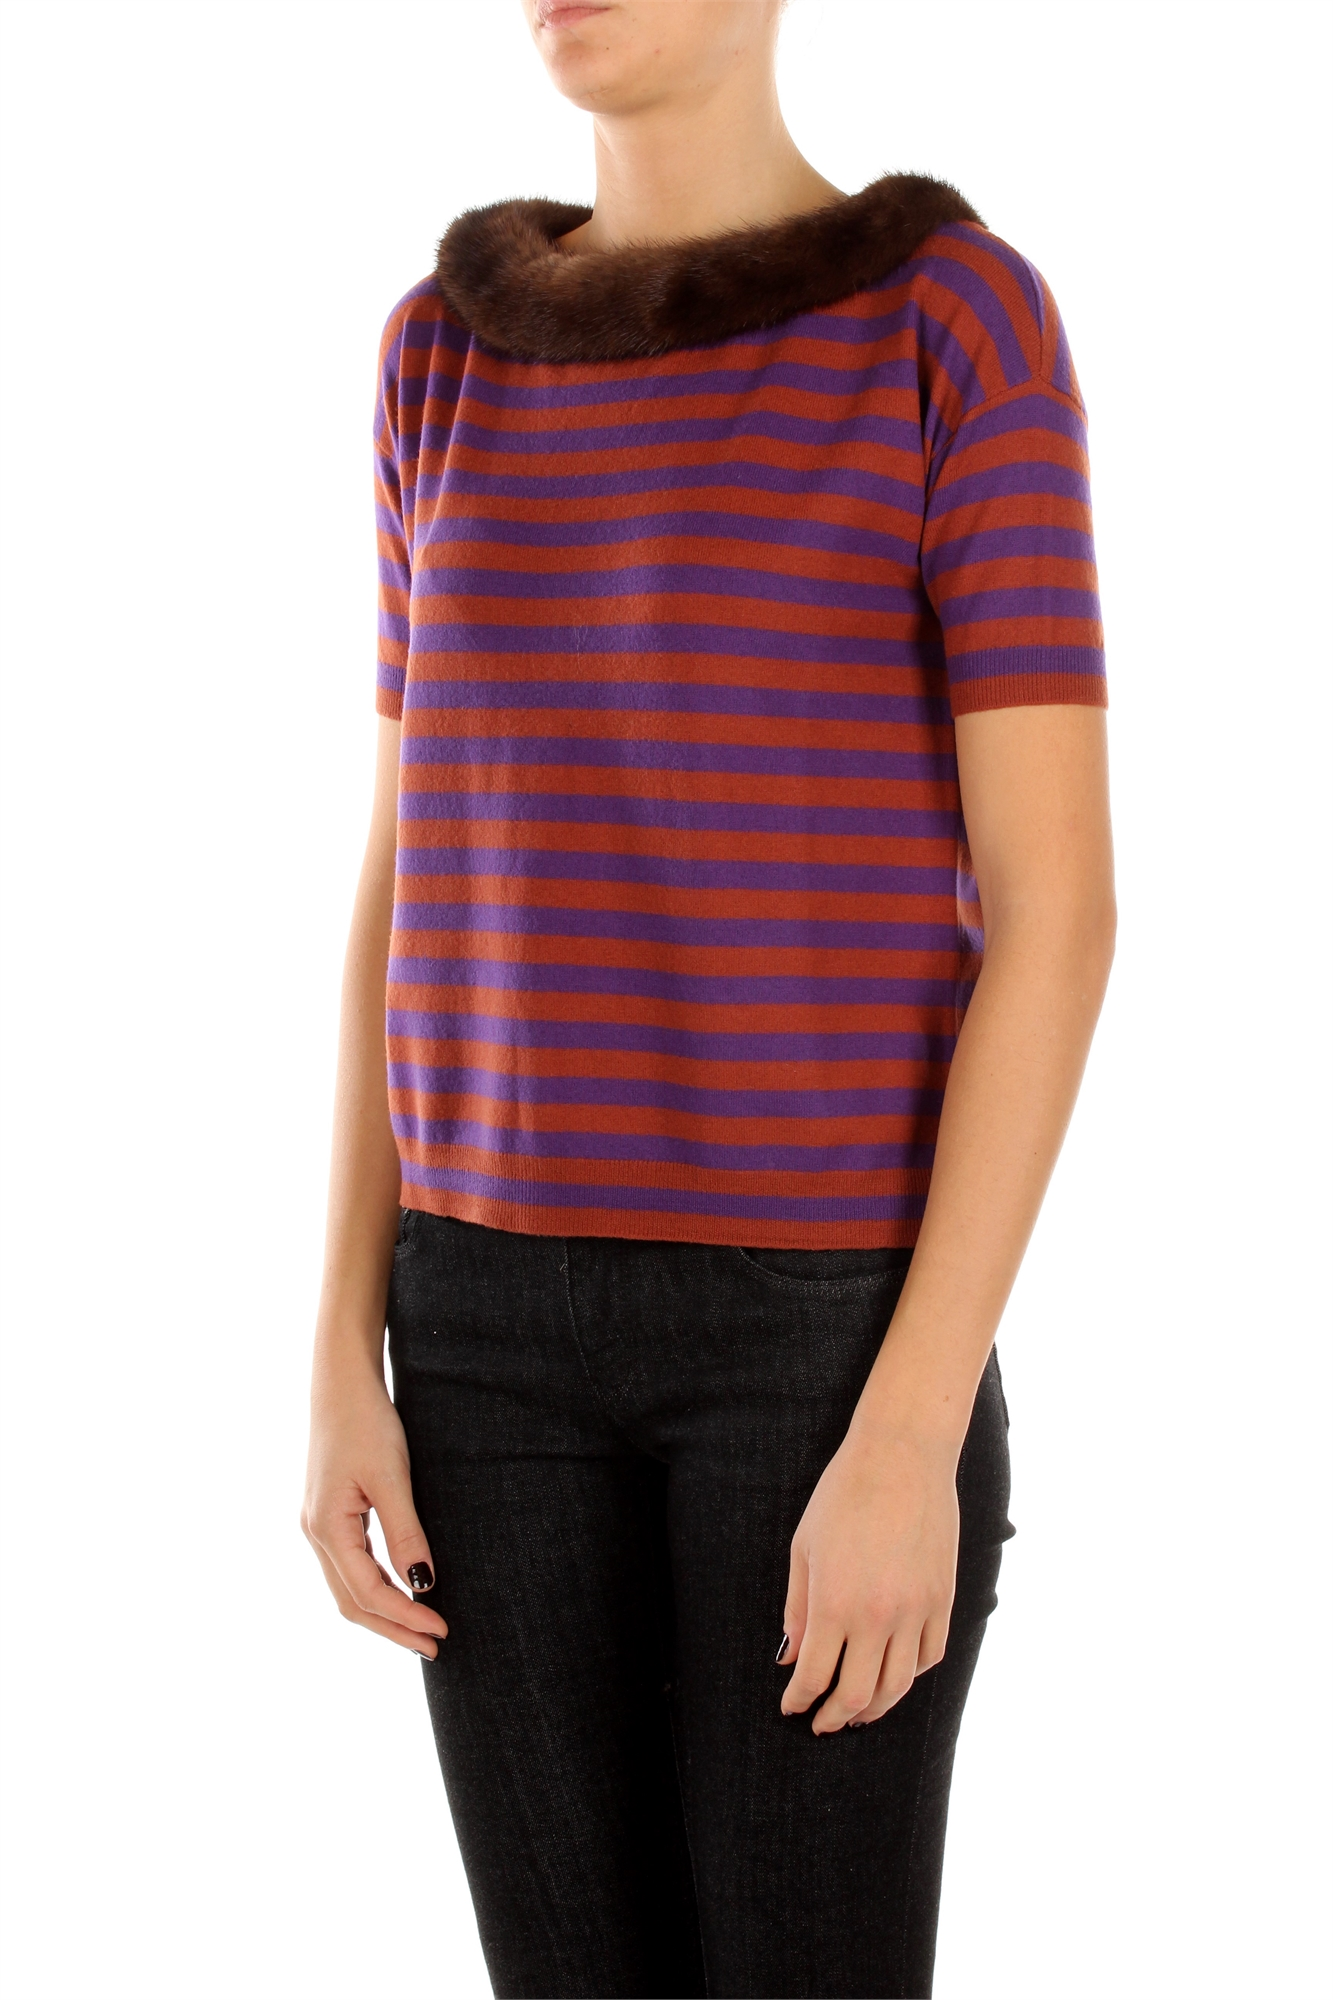 Buy low price, high quality women's woolen tops with worldwide shipping on ciproprescription.ga